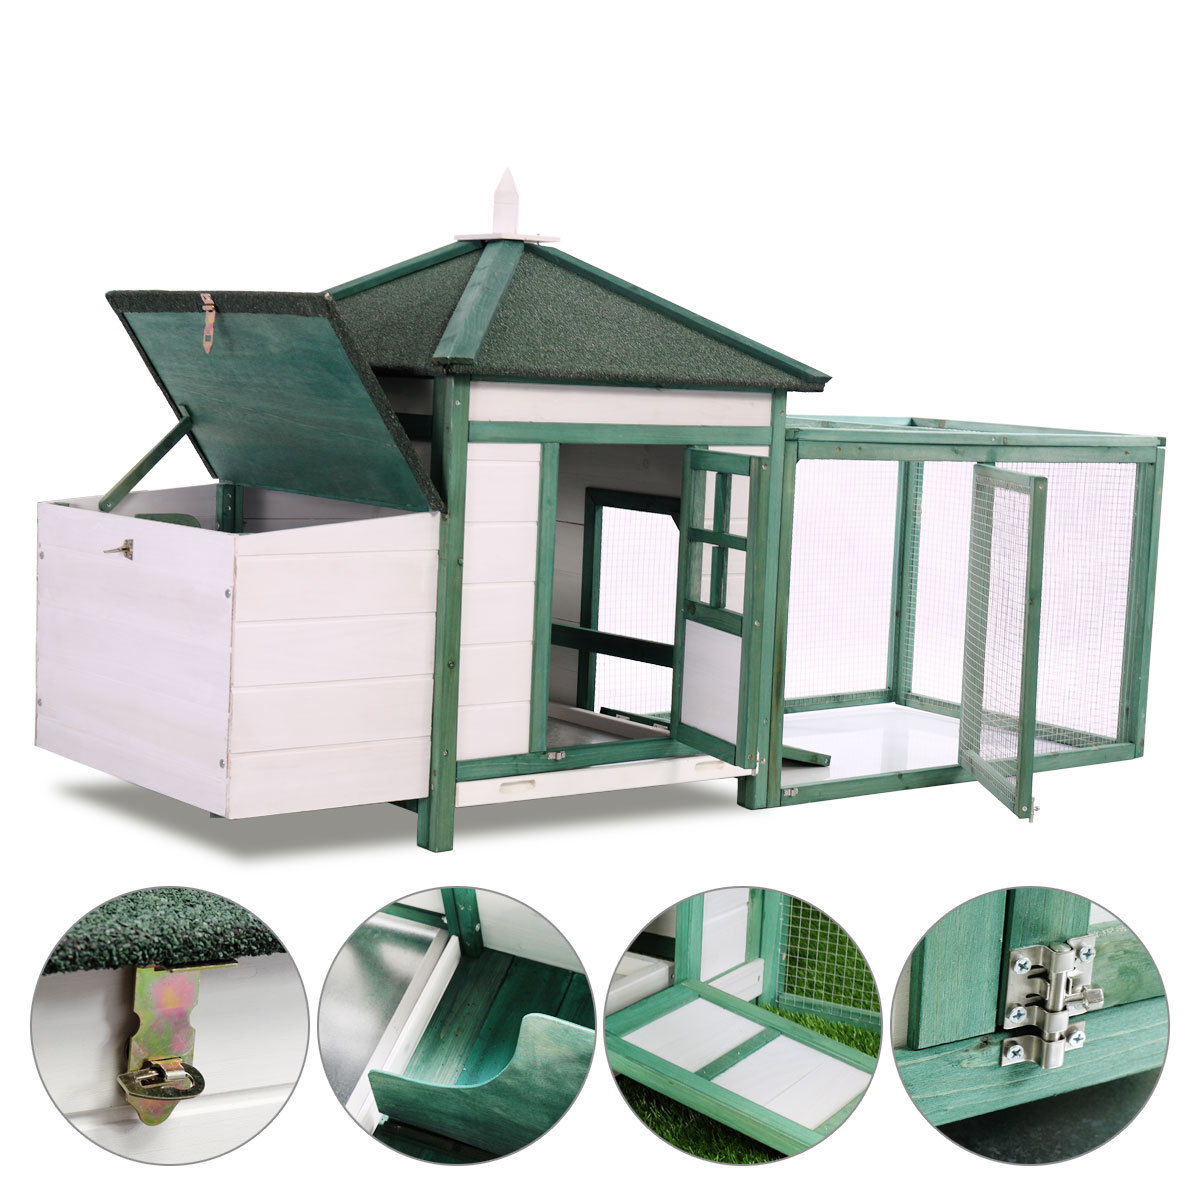 "Jaxpety Deluxe Hen House 77"" Wooden Chicken Coop Poultry Cage Hutch Outdoor Run"